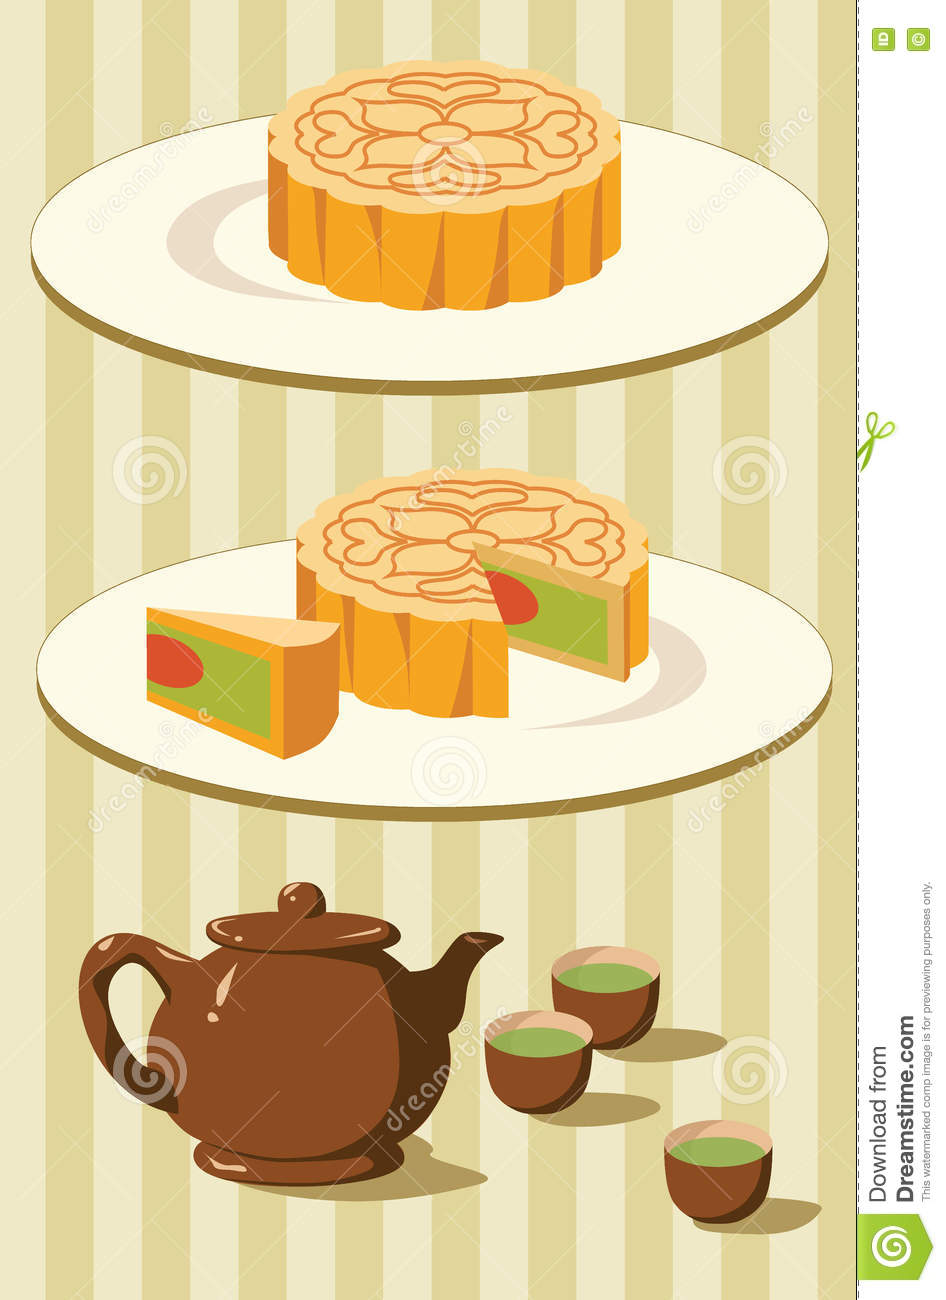 Chinese Moon Cake And Tea For Mid Autumn Festival Stock ...